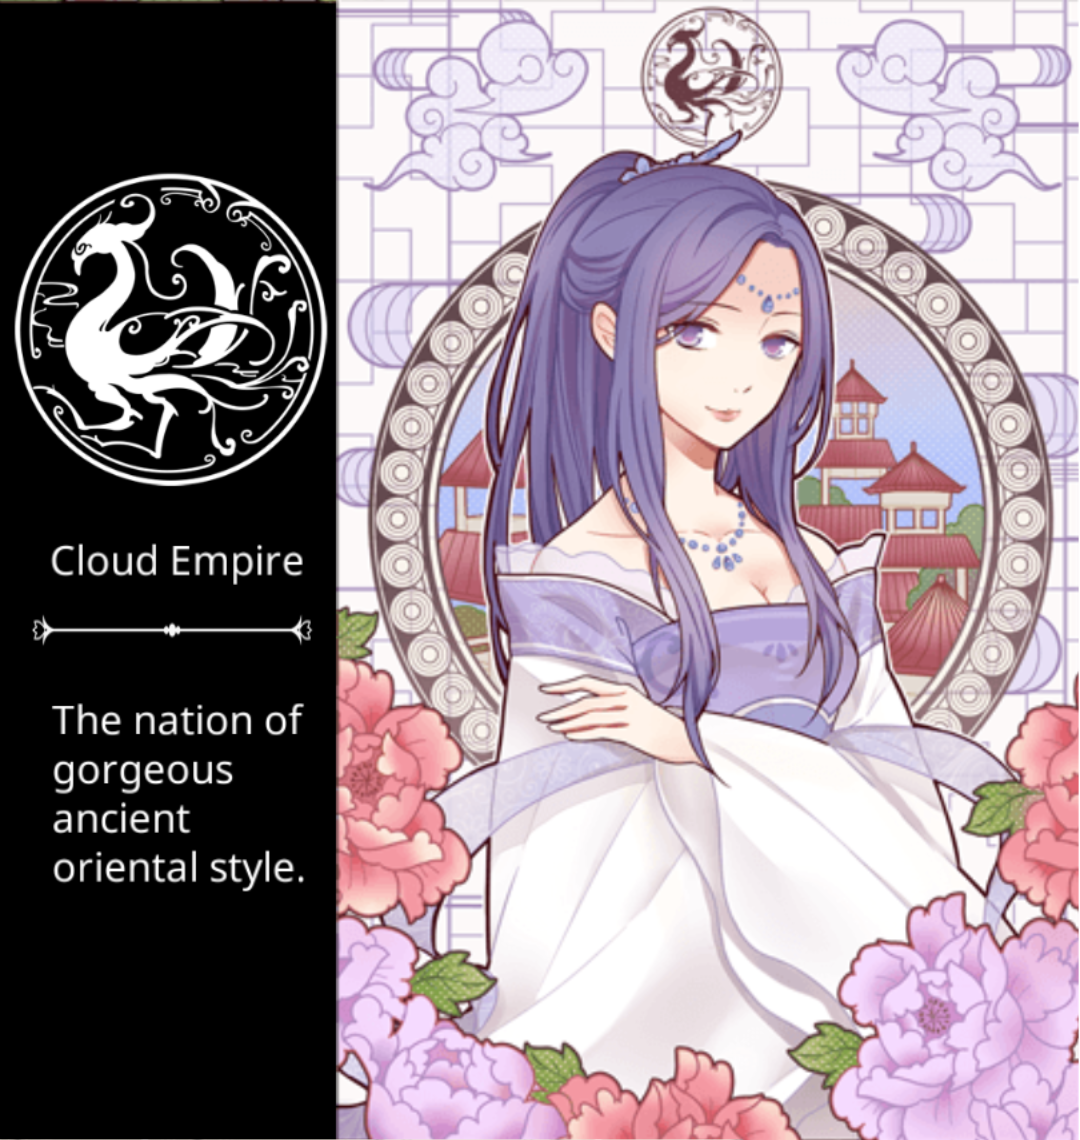 Cloud Empire Ancient Japanese style